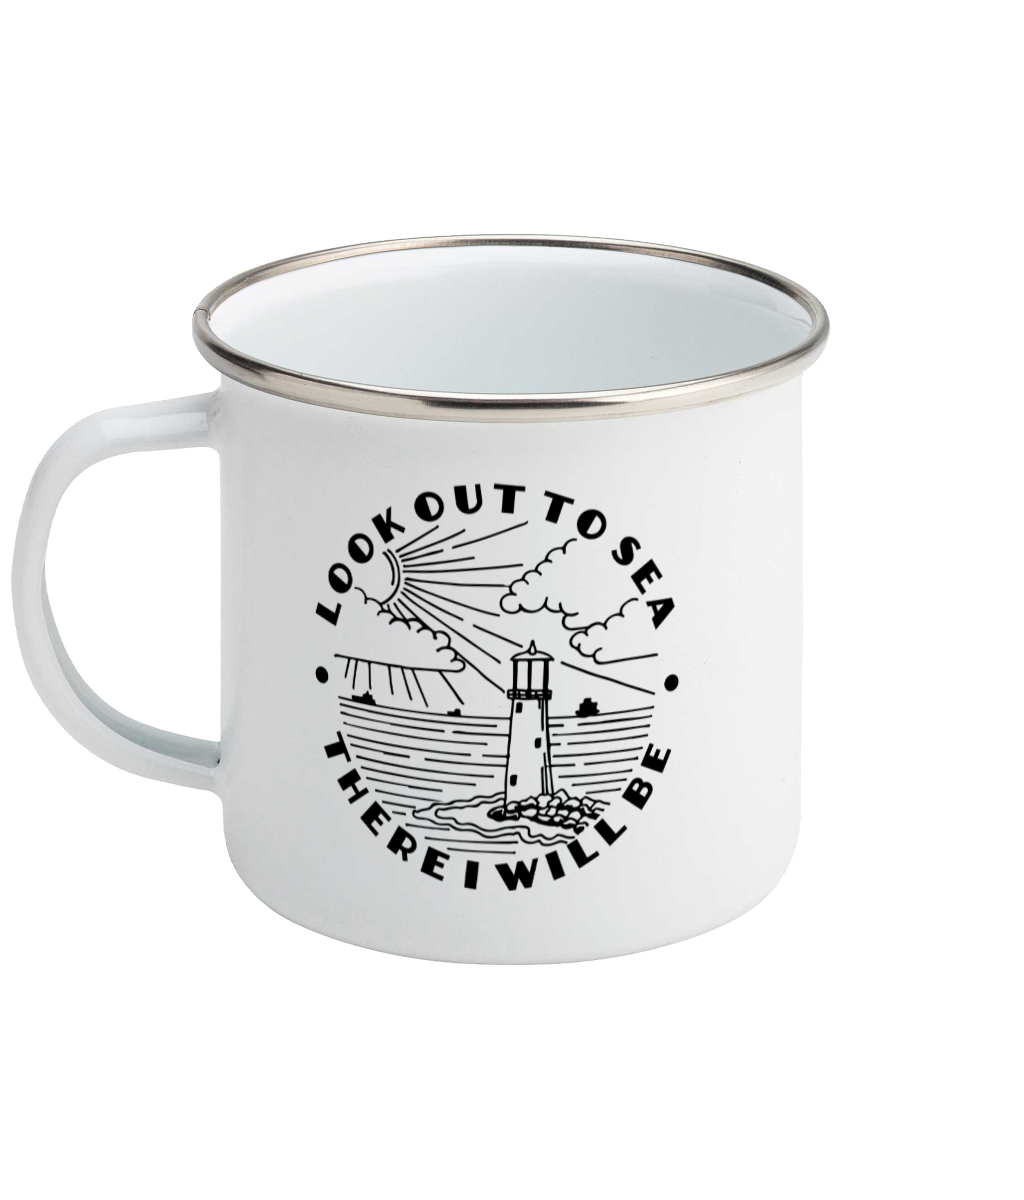 Look Out To Sea - Enamel Mug, Suggested Products, Pen and Ink Studios Adventure Clothing